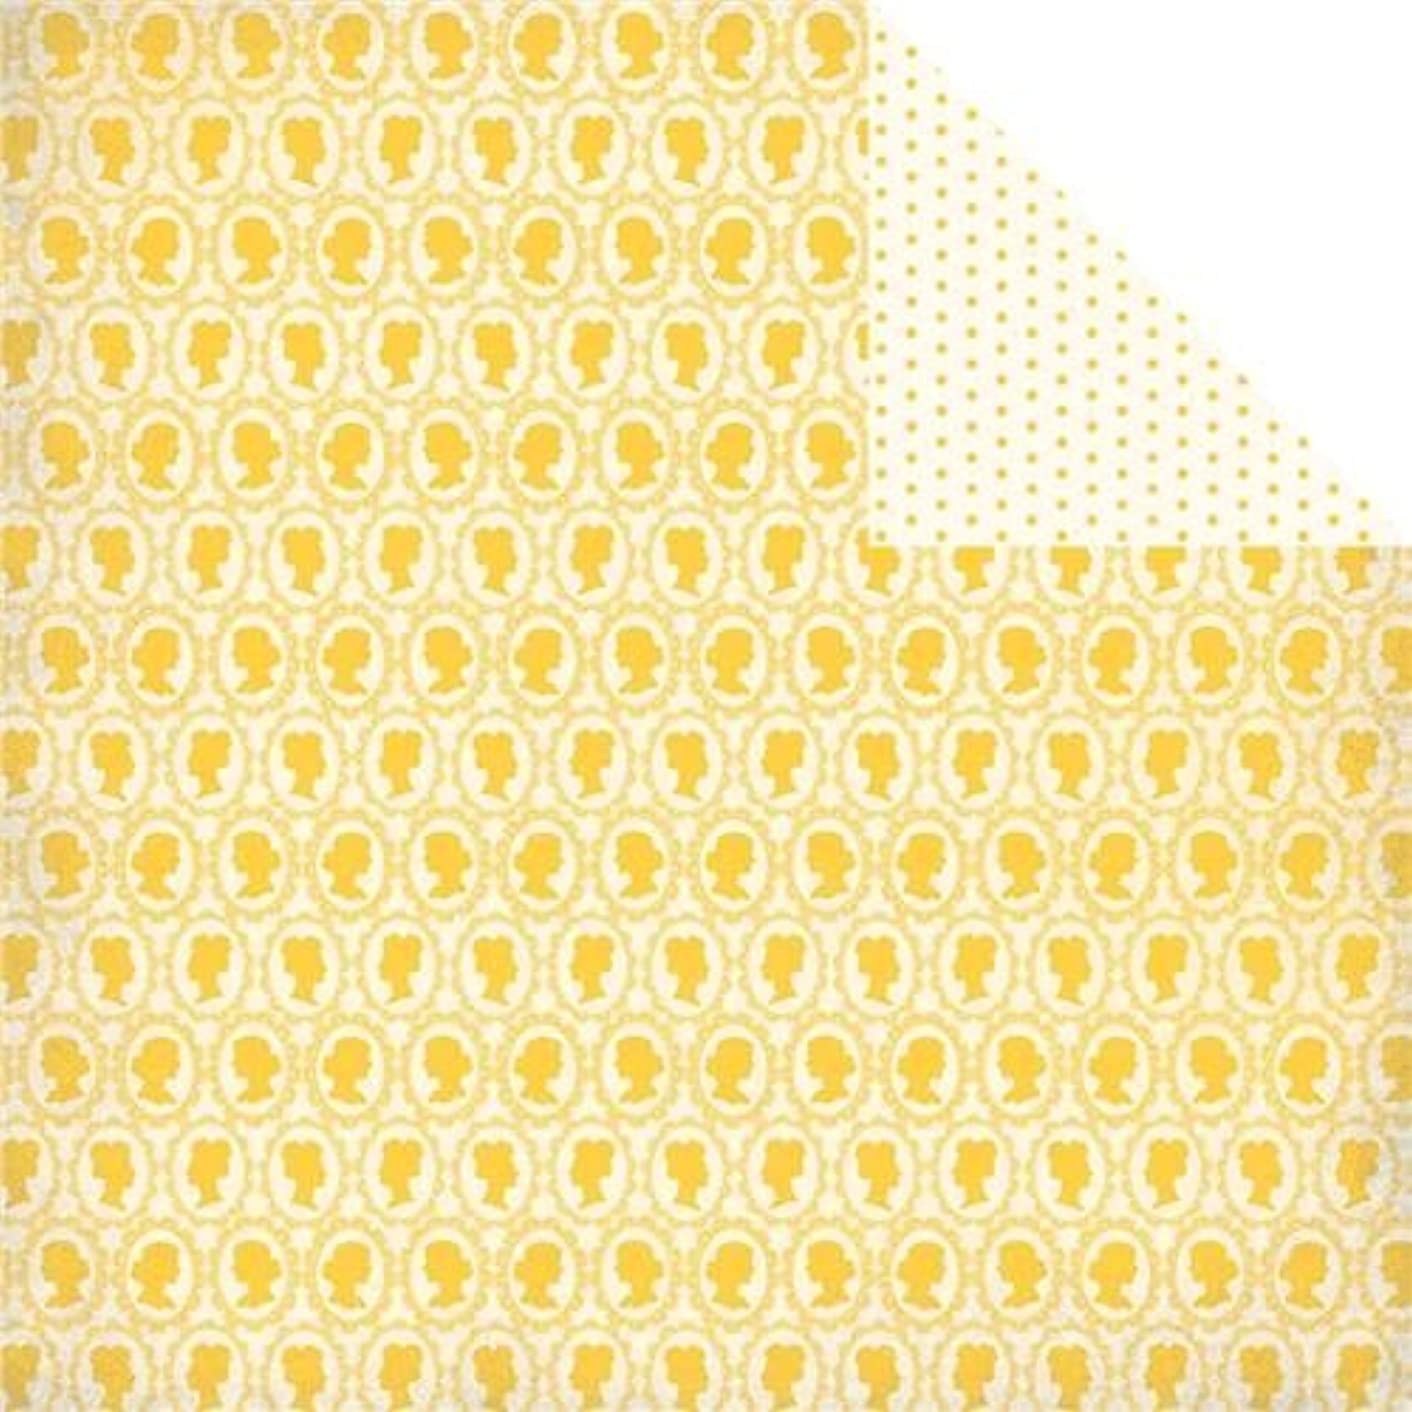 Authentique Paper Beauty Double-Sided Cardstock, 12 X 12-Inch, Cameo Silhouettes/Mini Dot